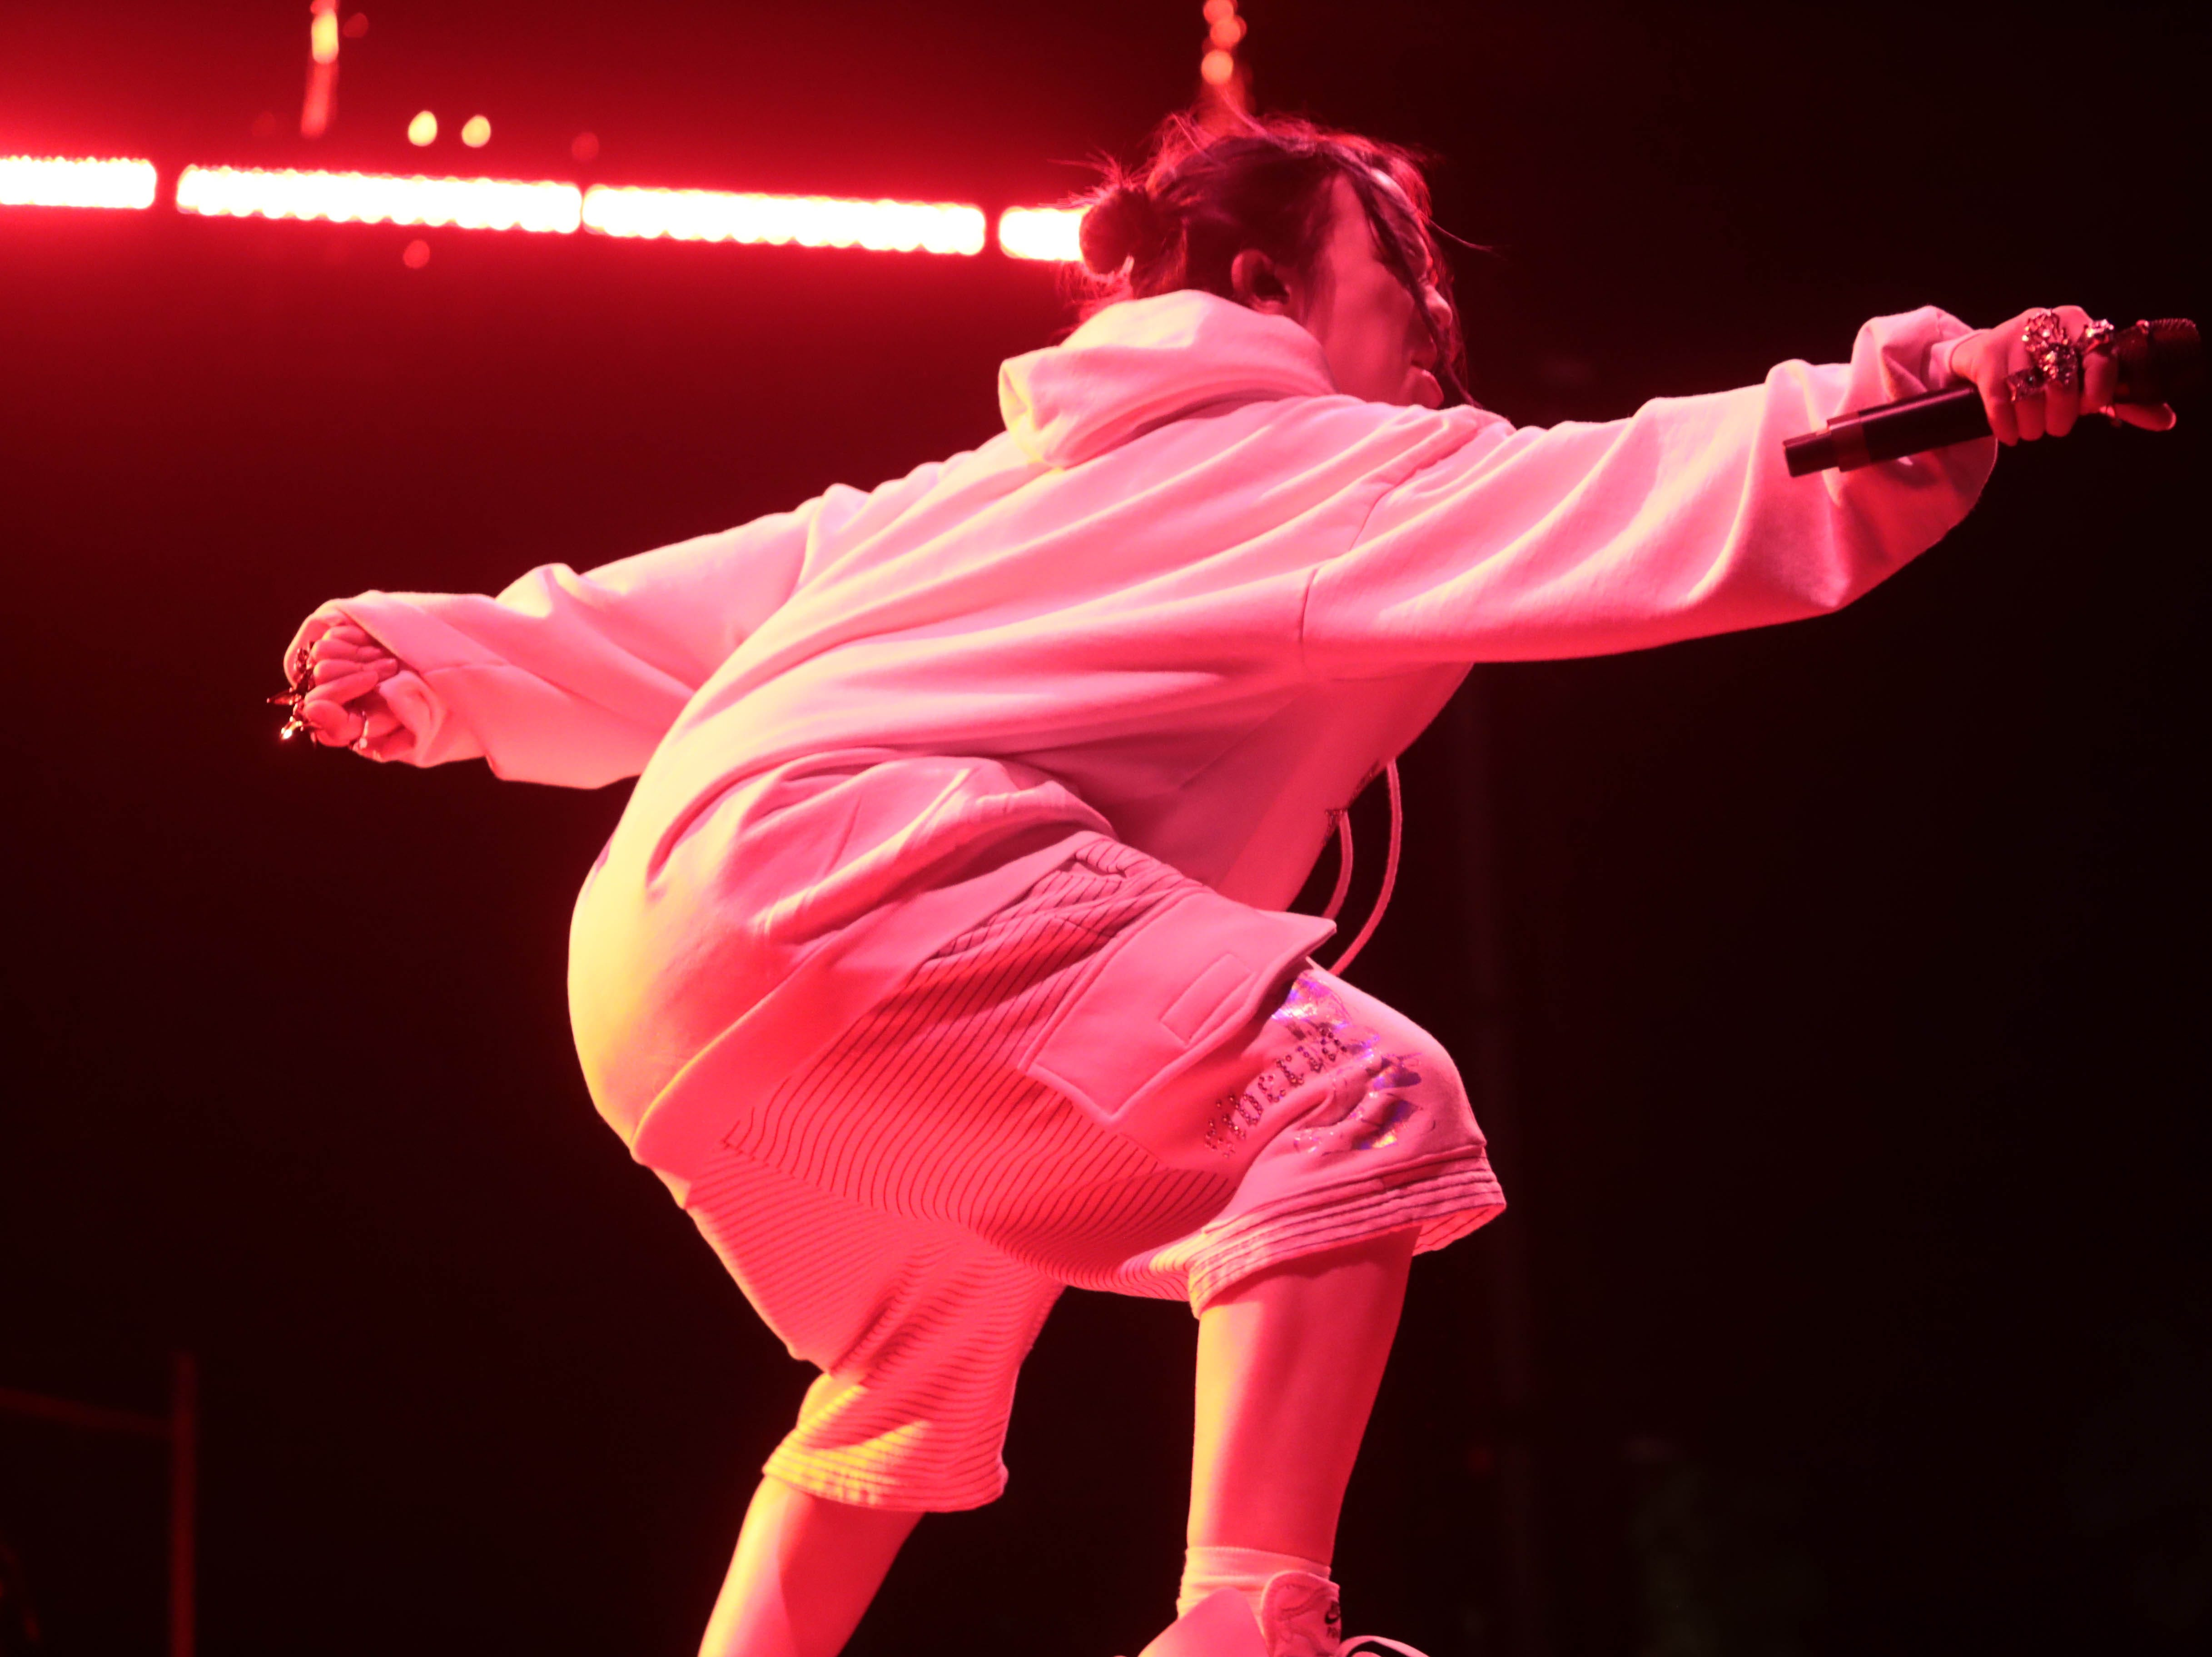 Billie Eilish performs on Saturday, April 13, 2019 at Coachella Valley Music and Arts Festival in Indio, Calif.